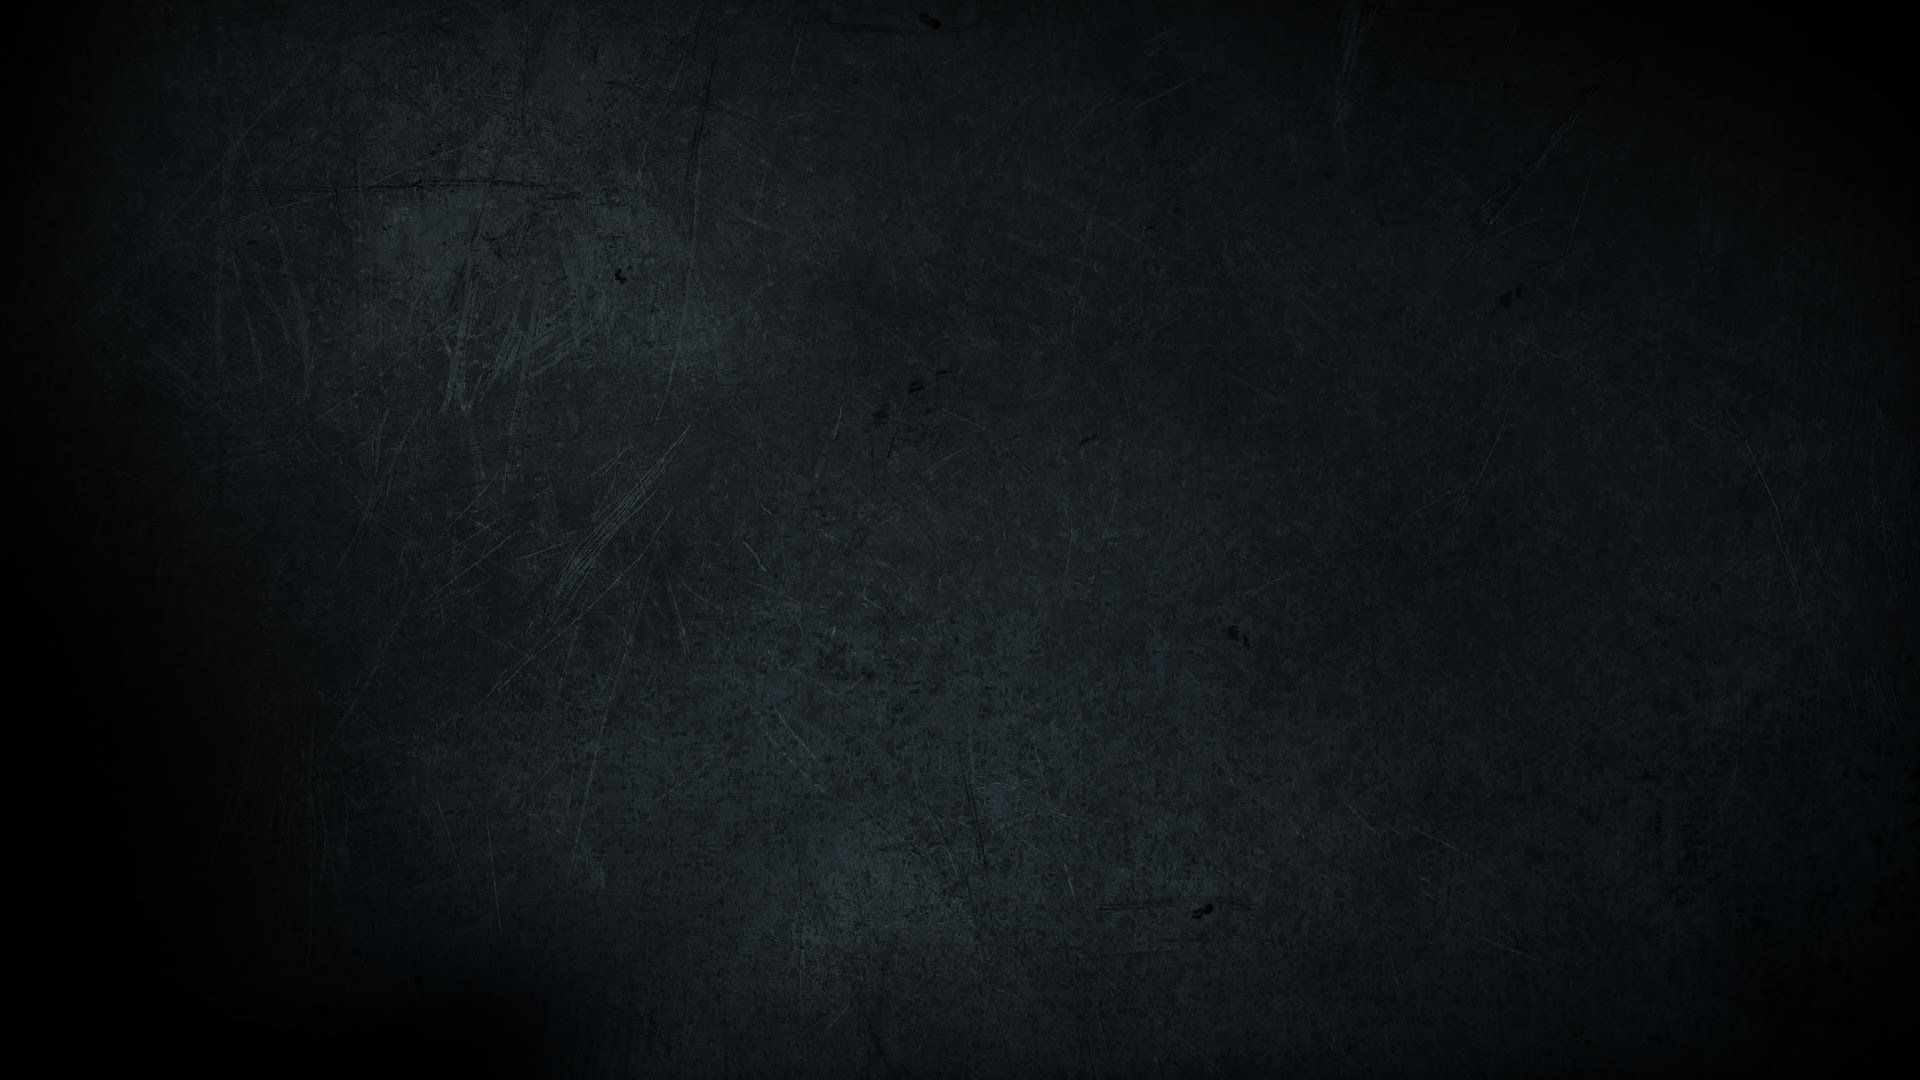 Plain Black free desktop background